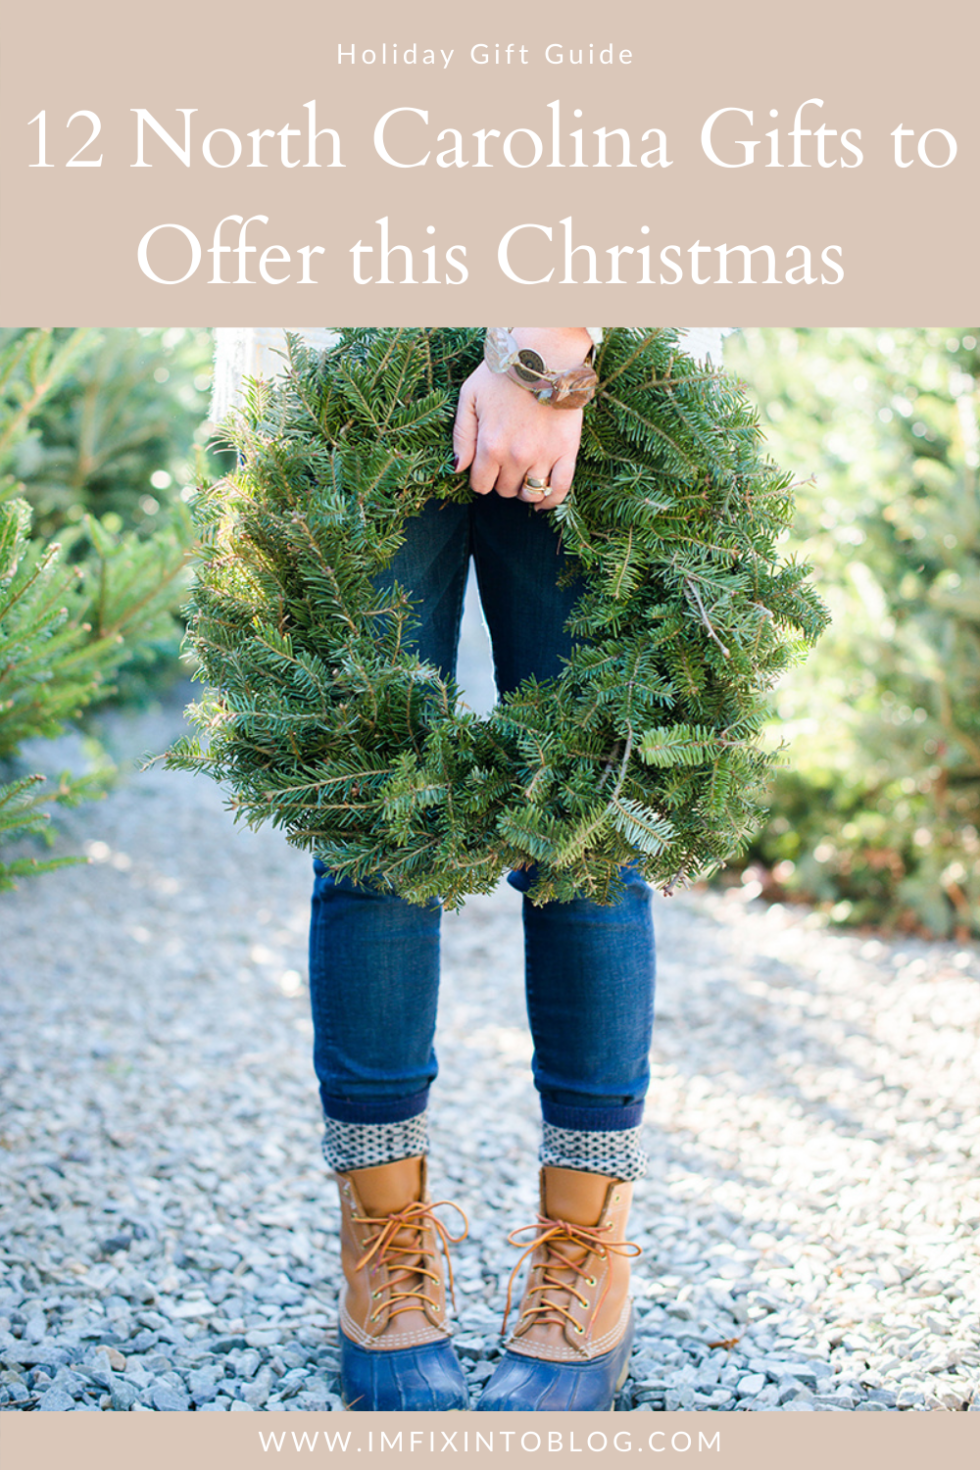 Holiday Gift Guide: 12 North Carolina Gifts to Offer this Christmas - I'm Fixin' To - @mbg0112 |North Carolina Gifts by popular North Carolina blog, I'm Fixin' To: Pinterest image of a woman holding a Christmas wreath.